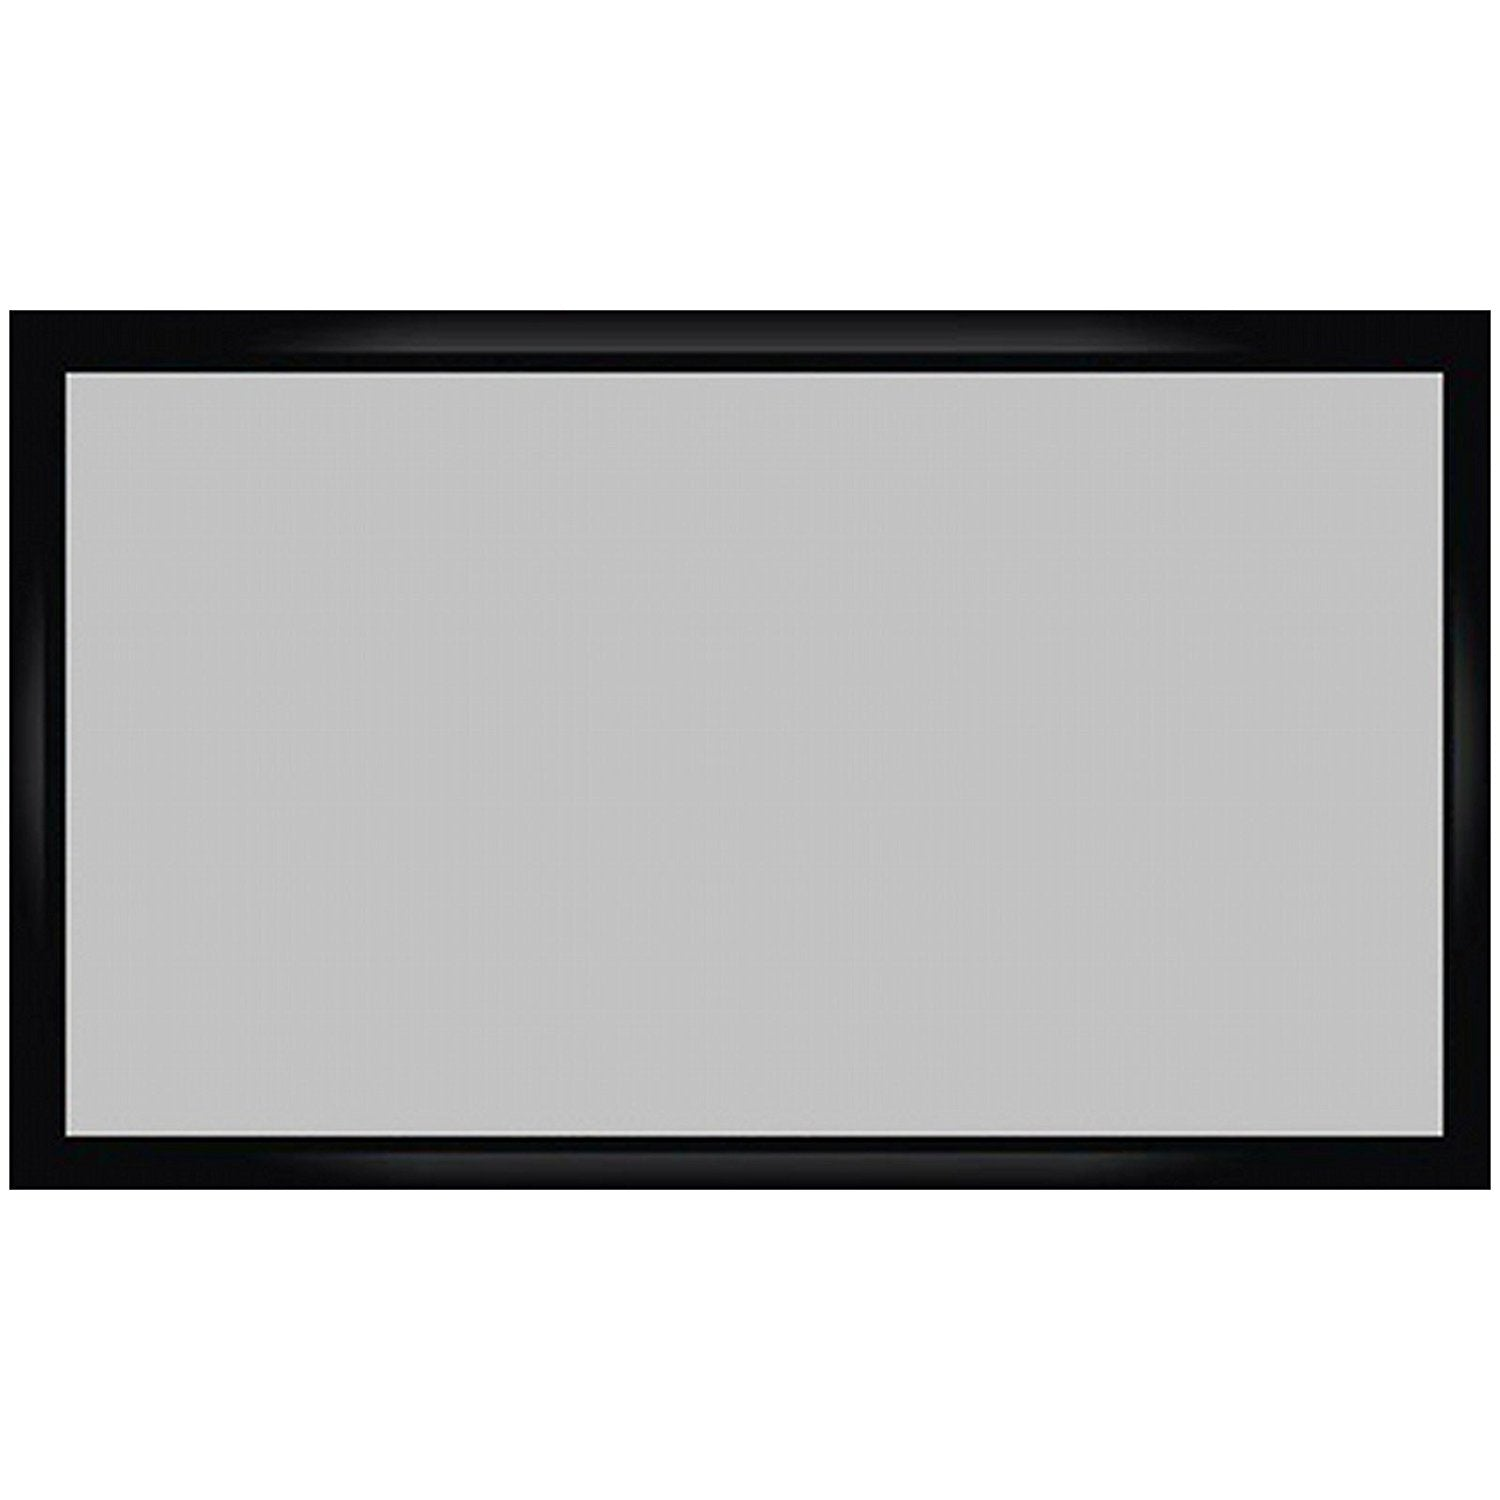 Antra 16:9 Fixed frame Projector Projection Screen (6-PC Frame) PVC ...